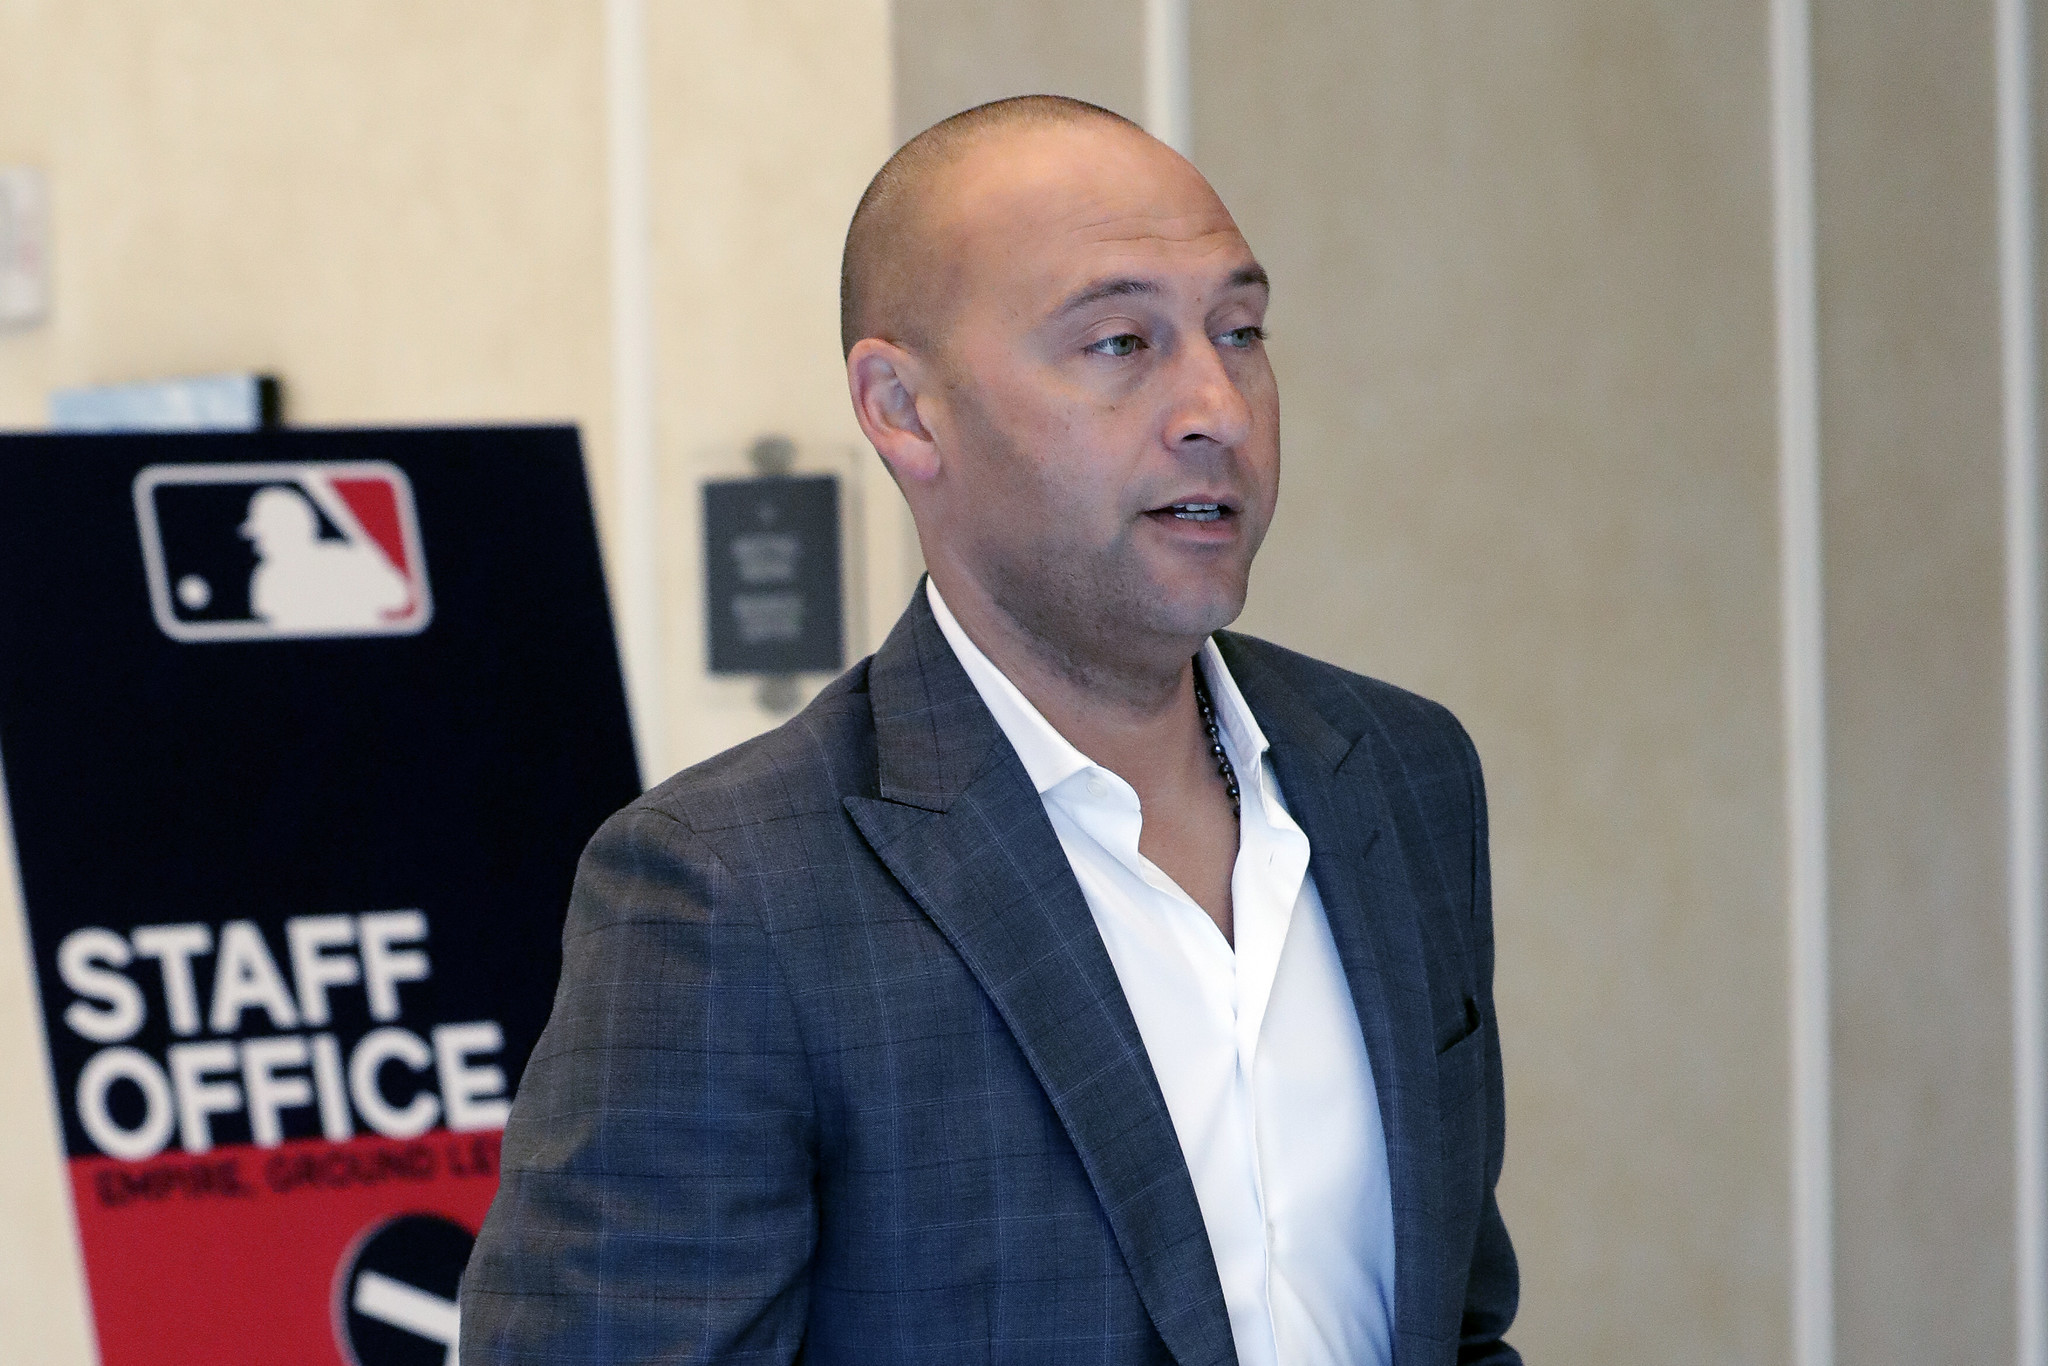 Derek Jeter thinks the Astros are 'paying the price' for sign-stealing